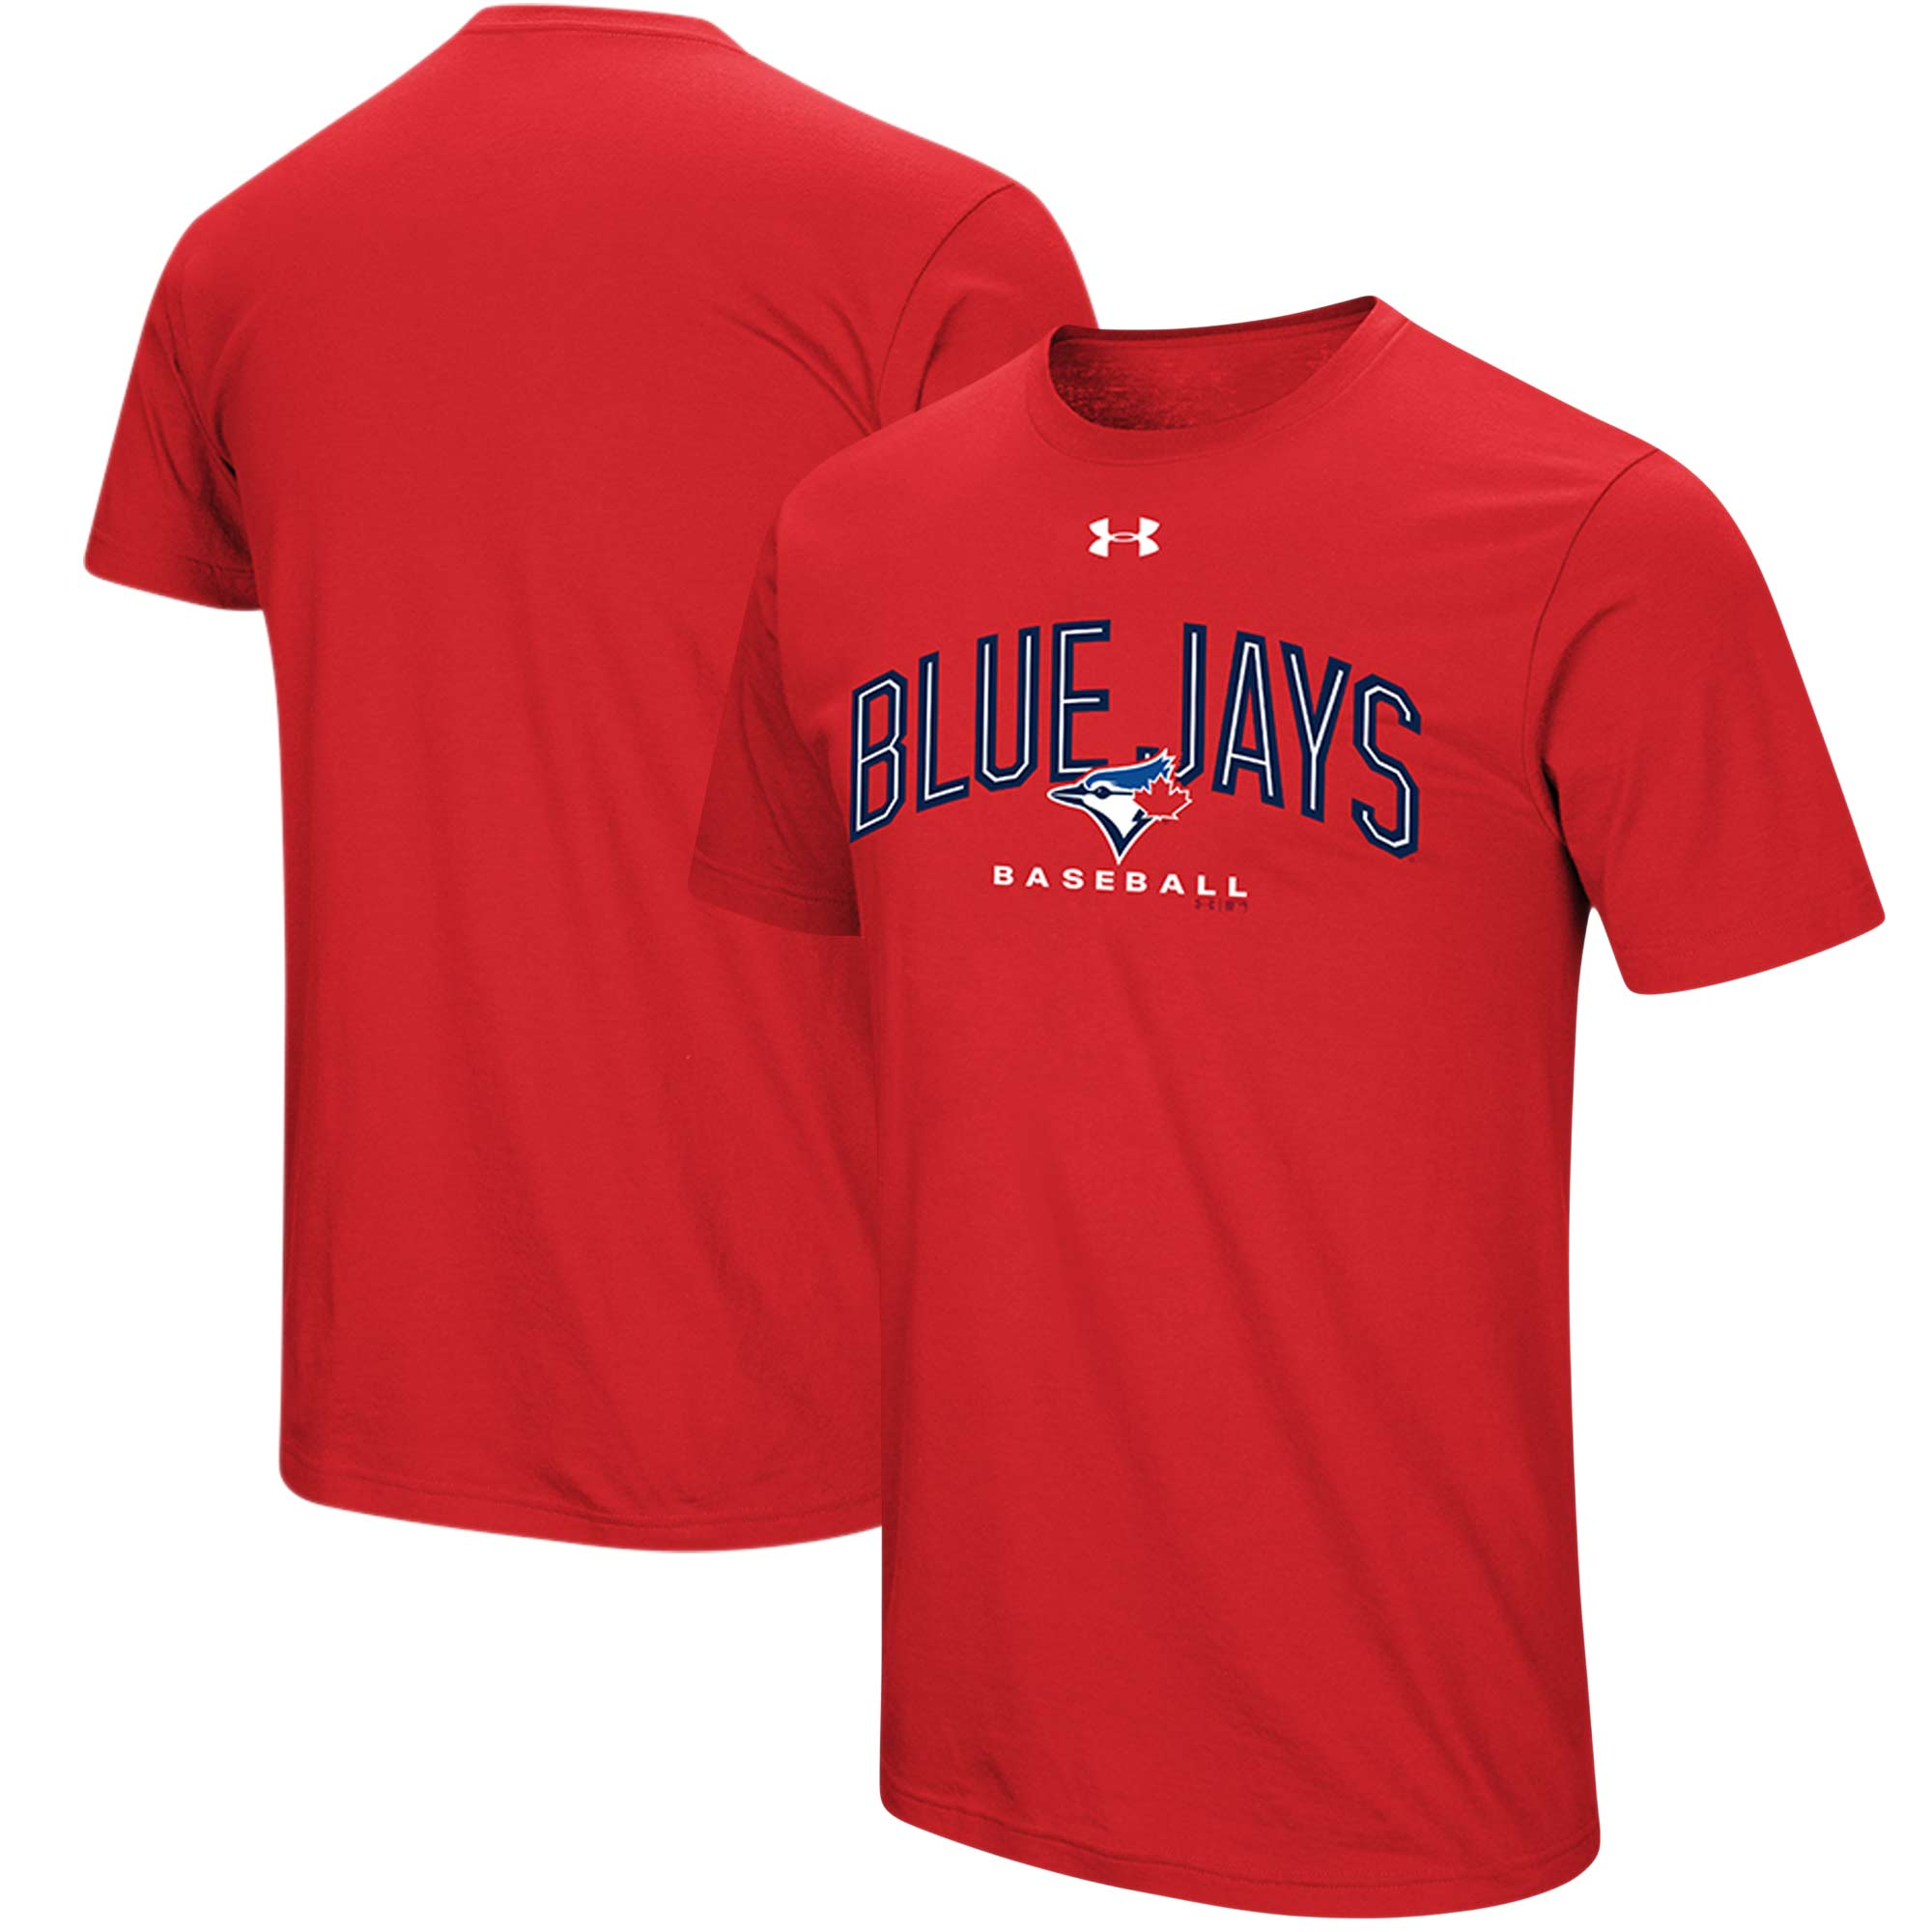 Toronto Blue Jays Under Armour Performance Arch T-Shirt - Red